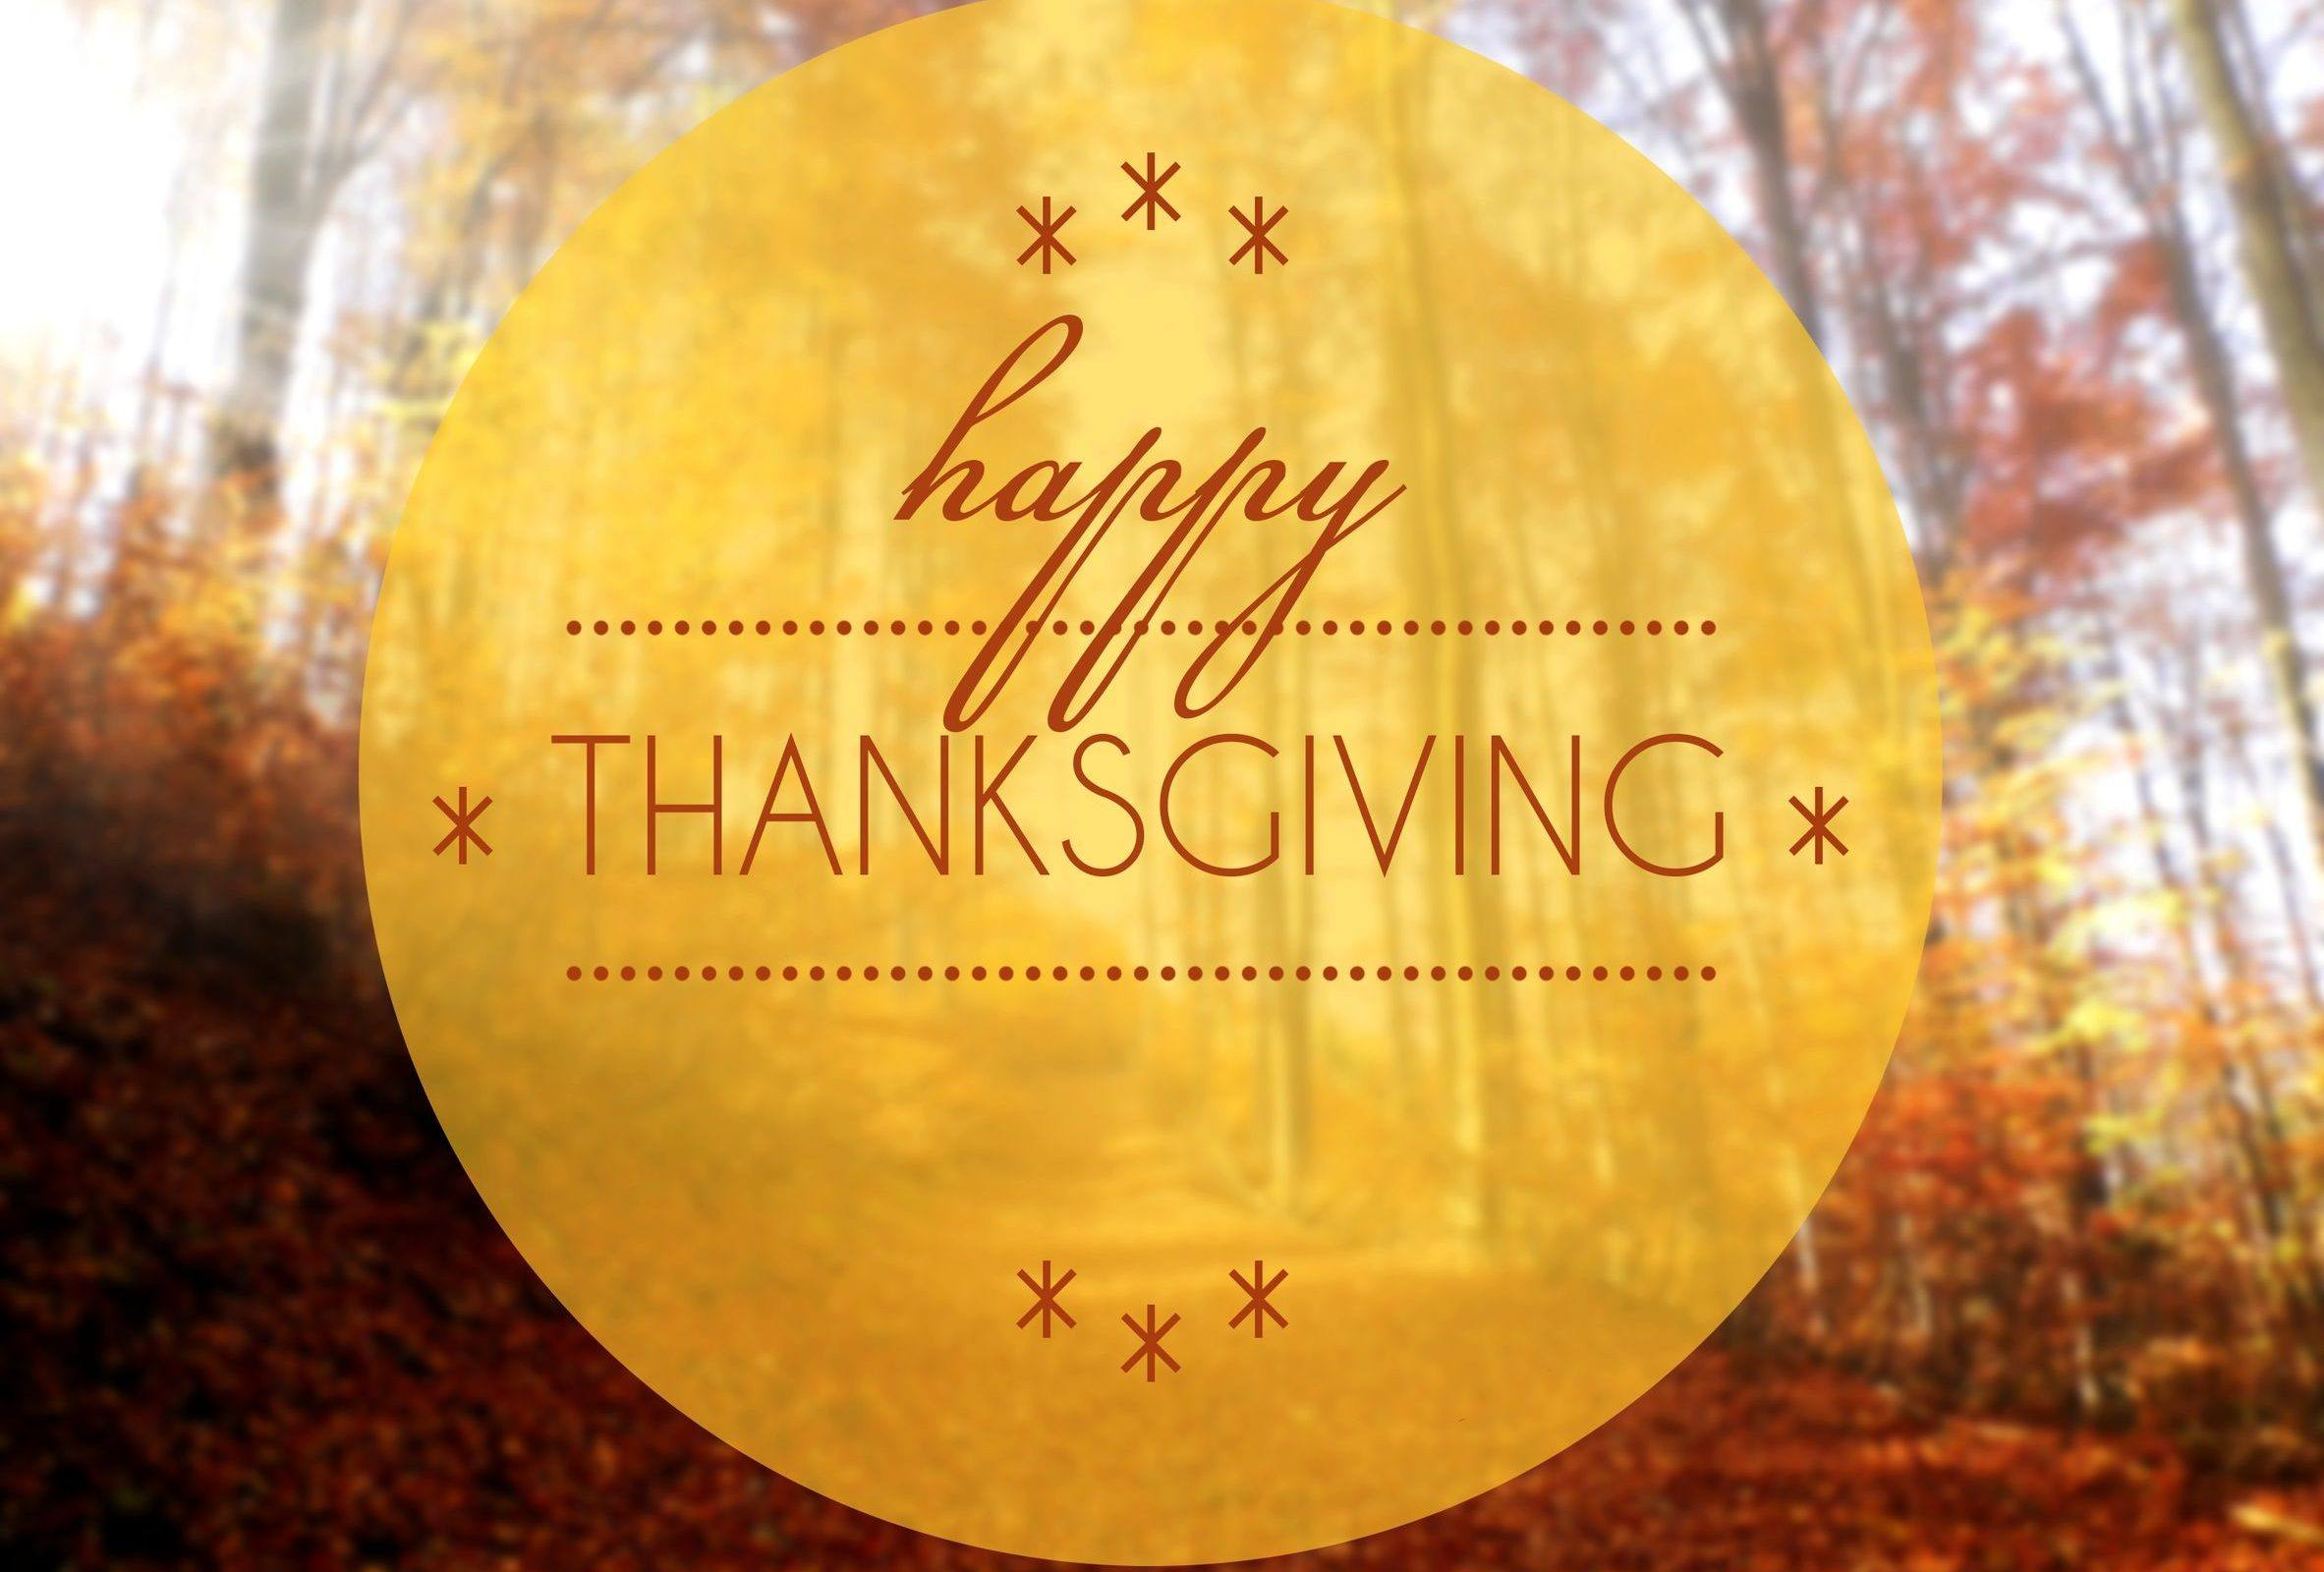 With Gratitude, from your Friends at Ama Spa in Chattanooga